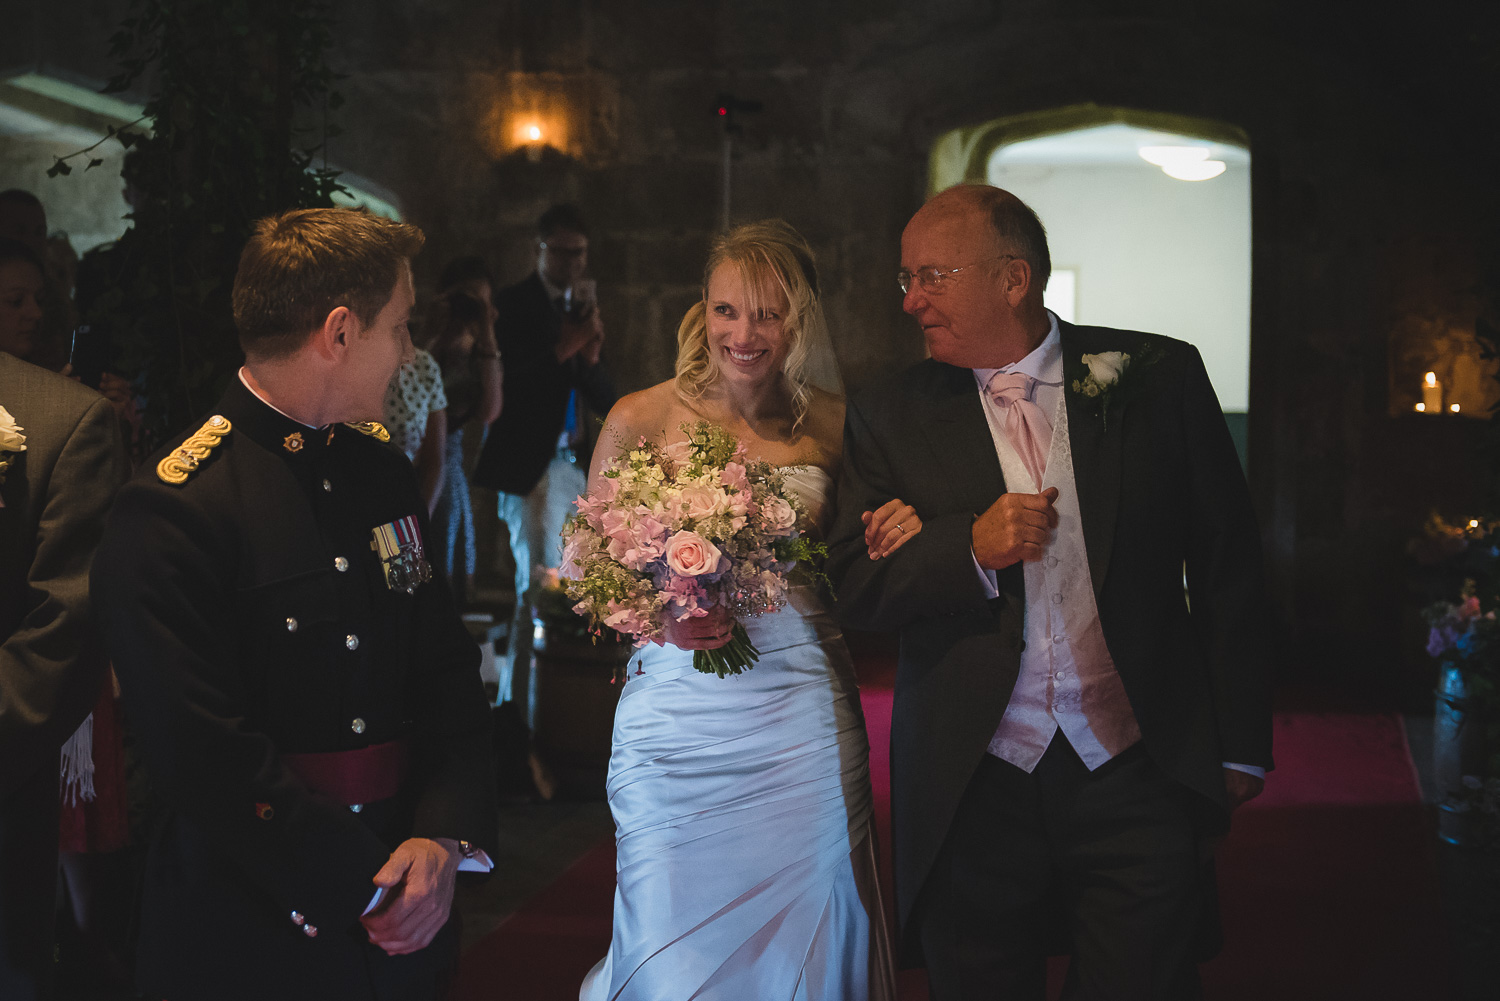 pendennis-castle-wedding-photographer-5.jpg